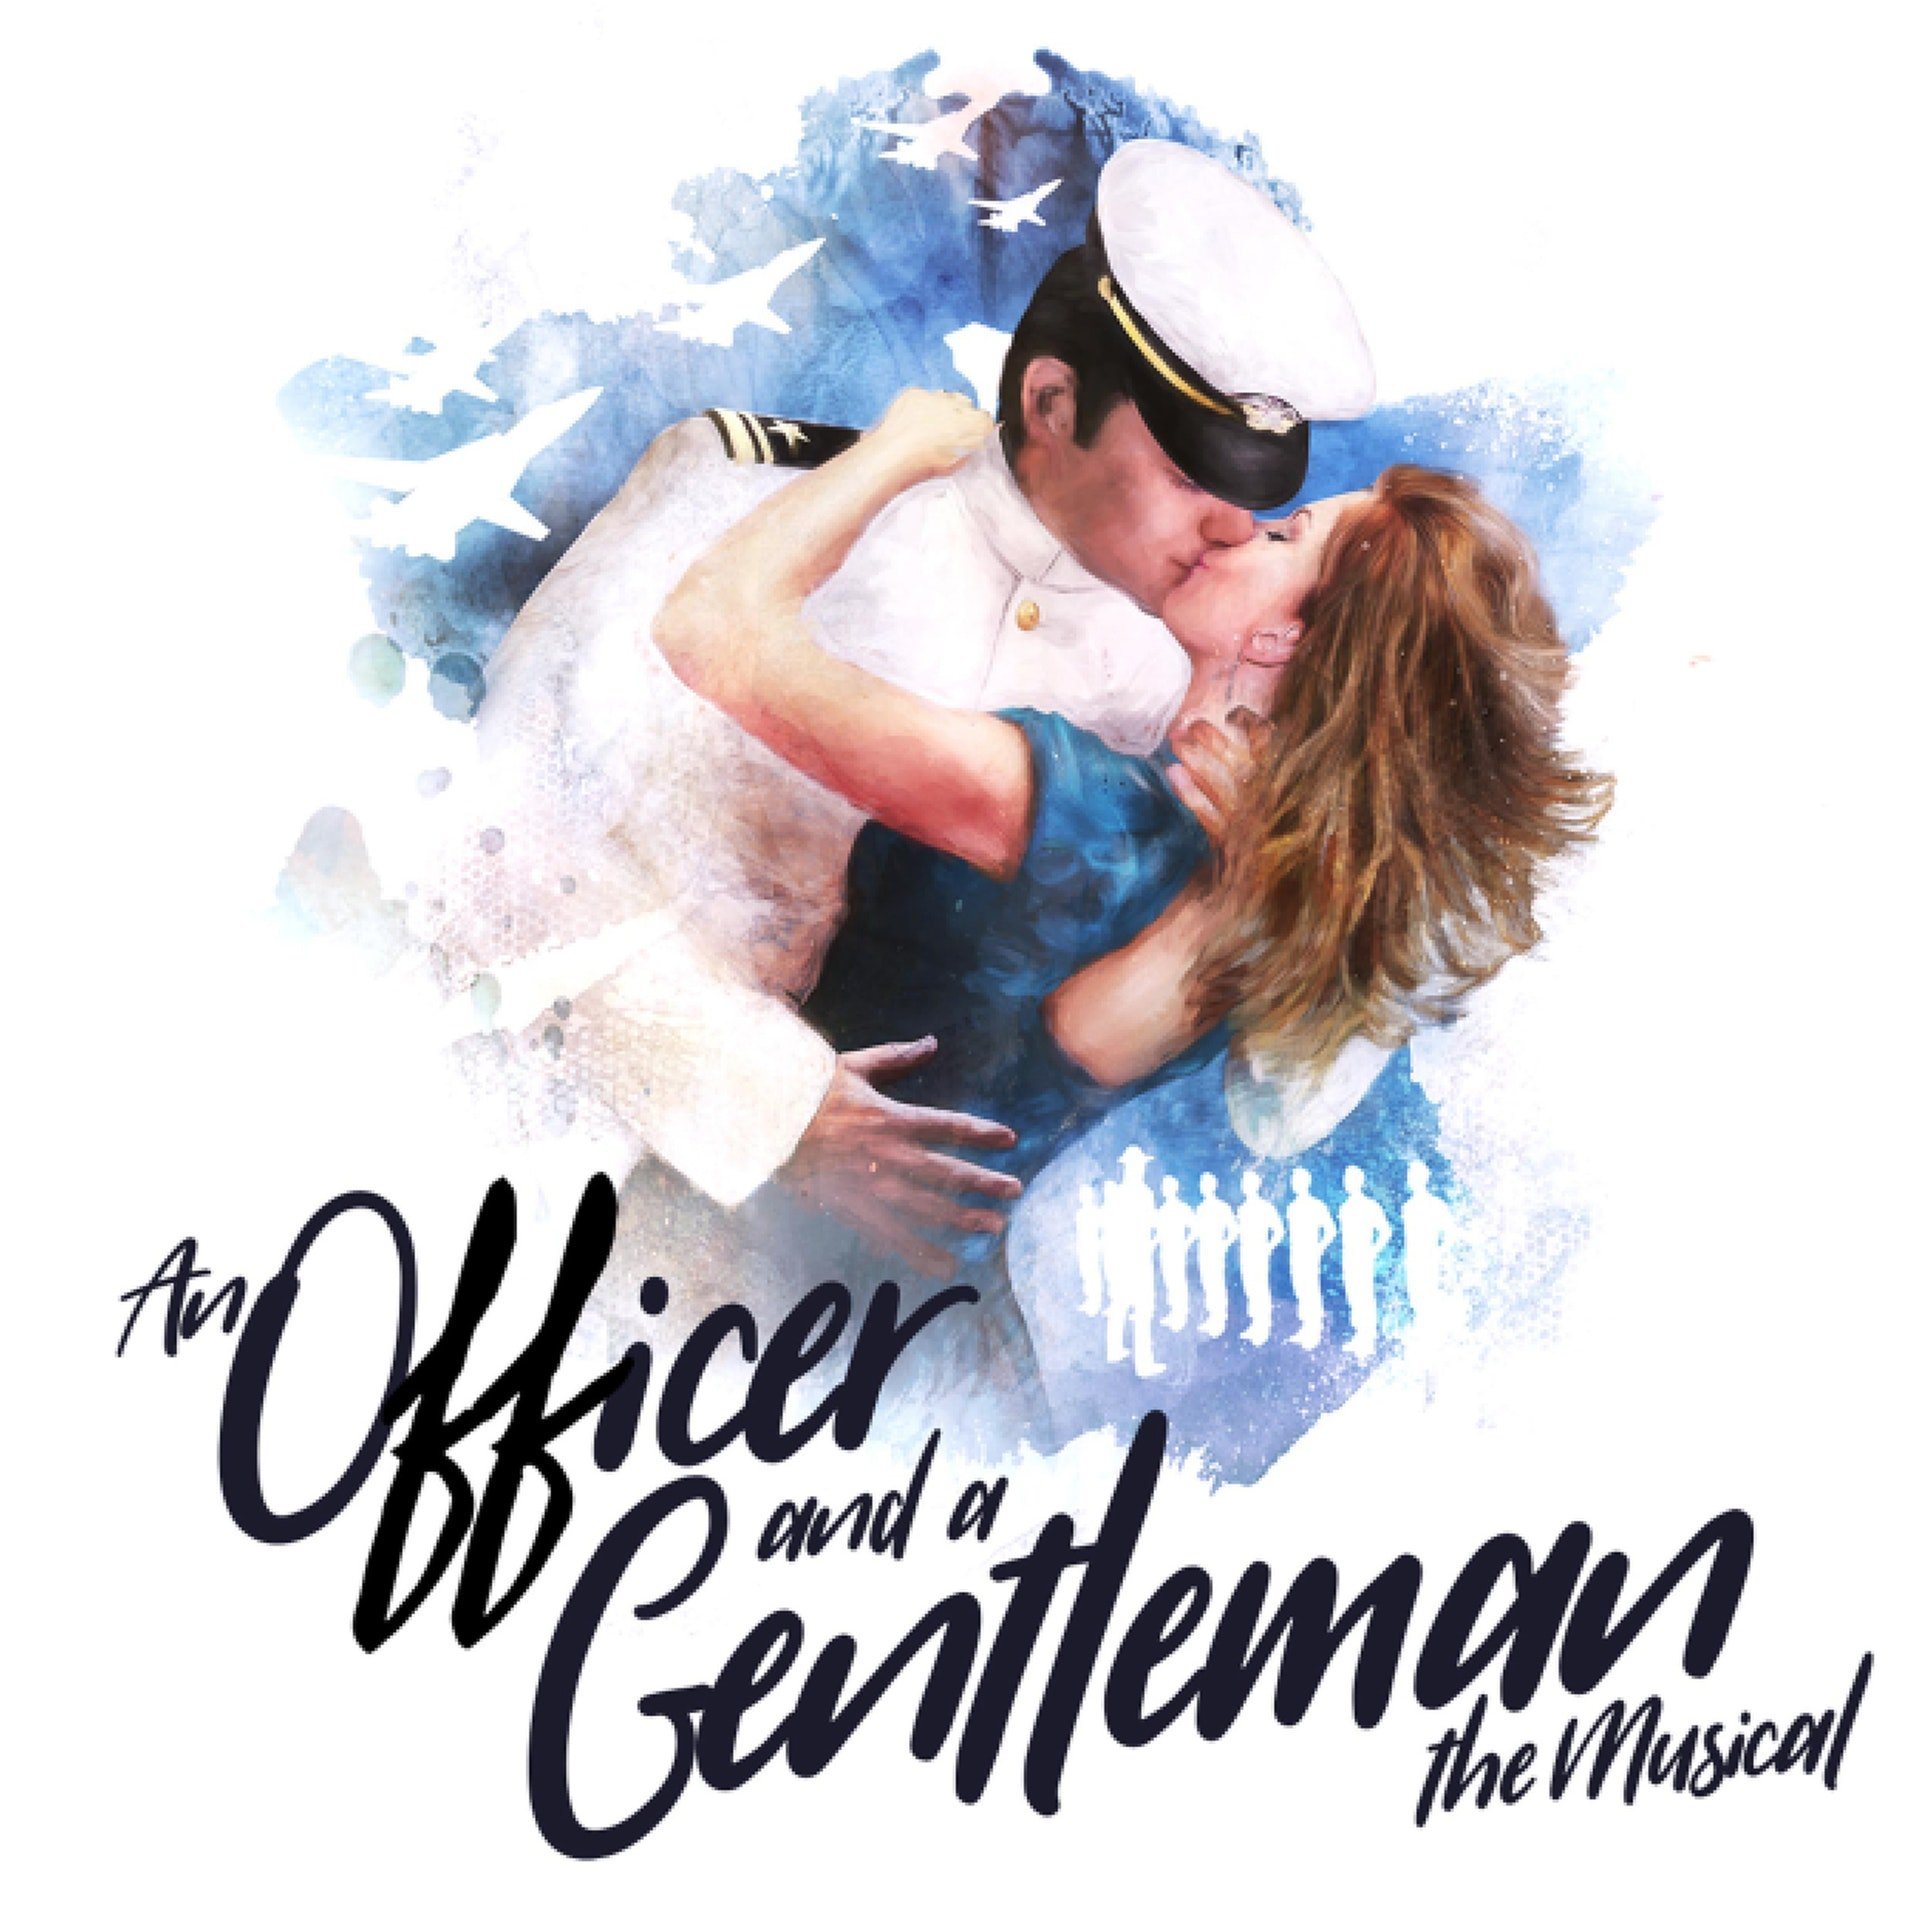 f5ff85a26be3ccf76c9c476ff139227733d69373 20 Things You Might Not Have Realised About An Officer And A Gentleman